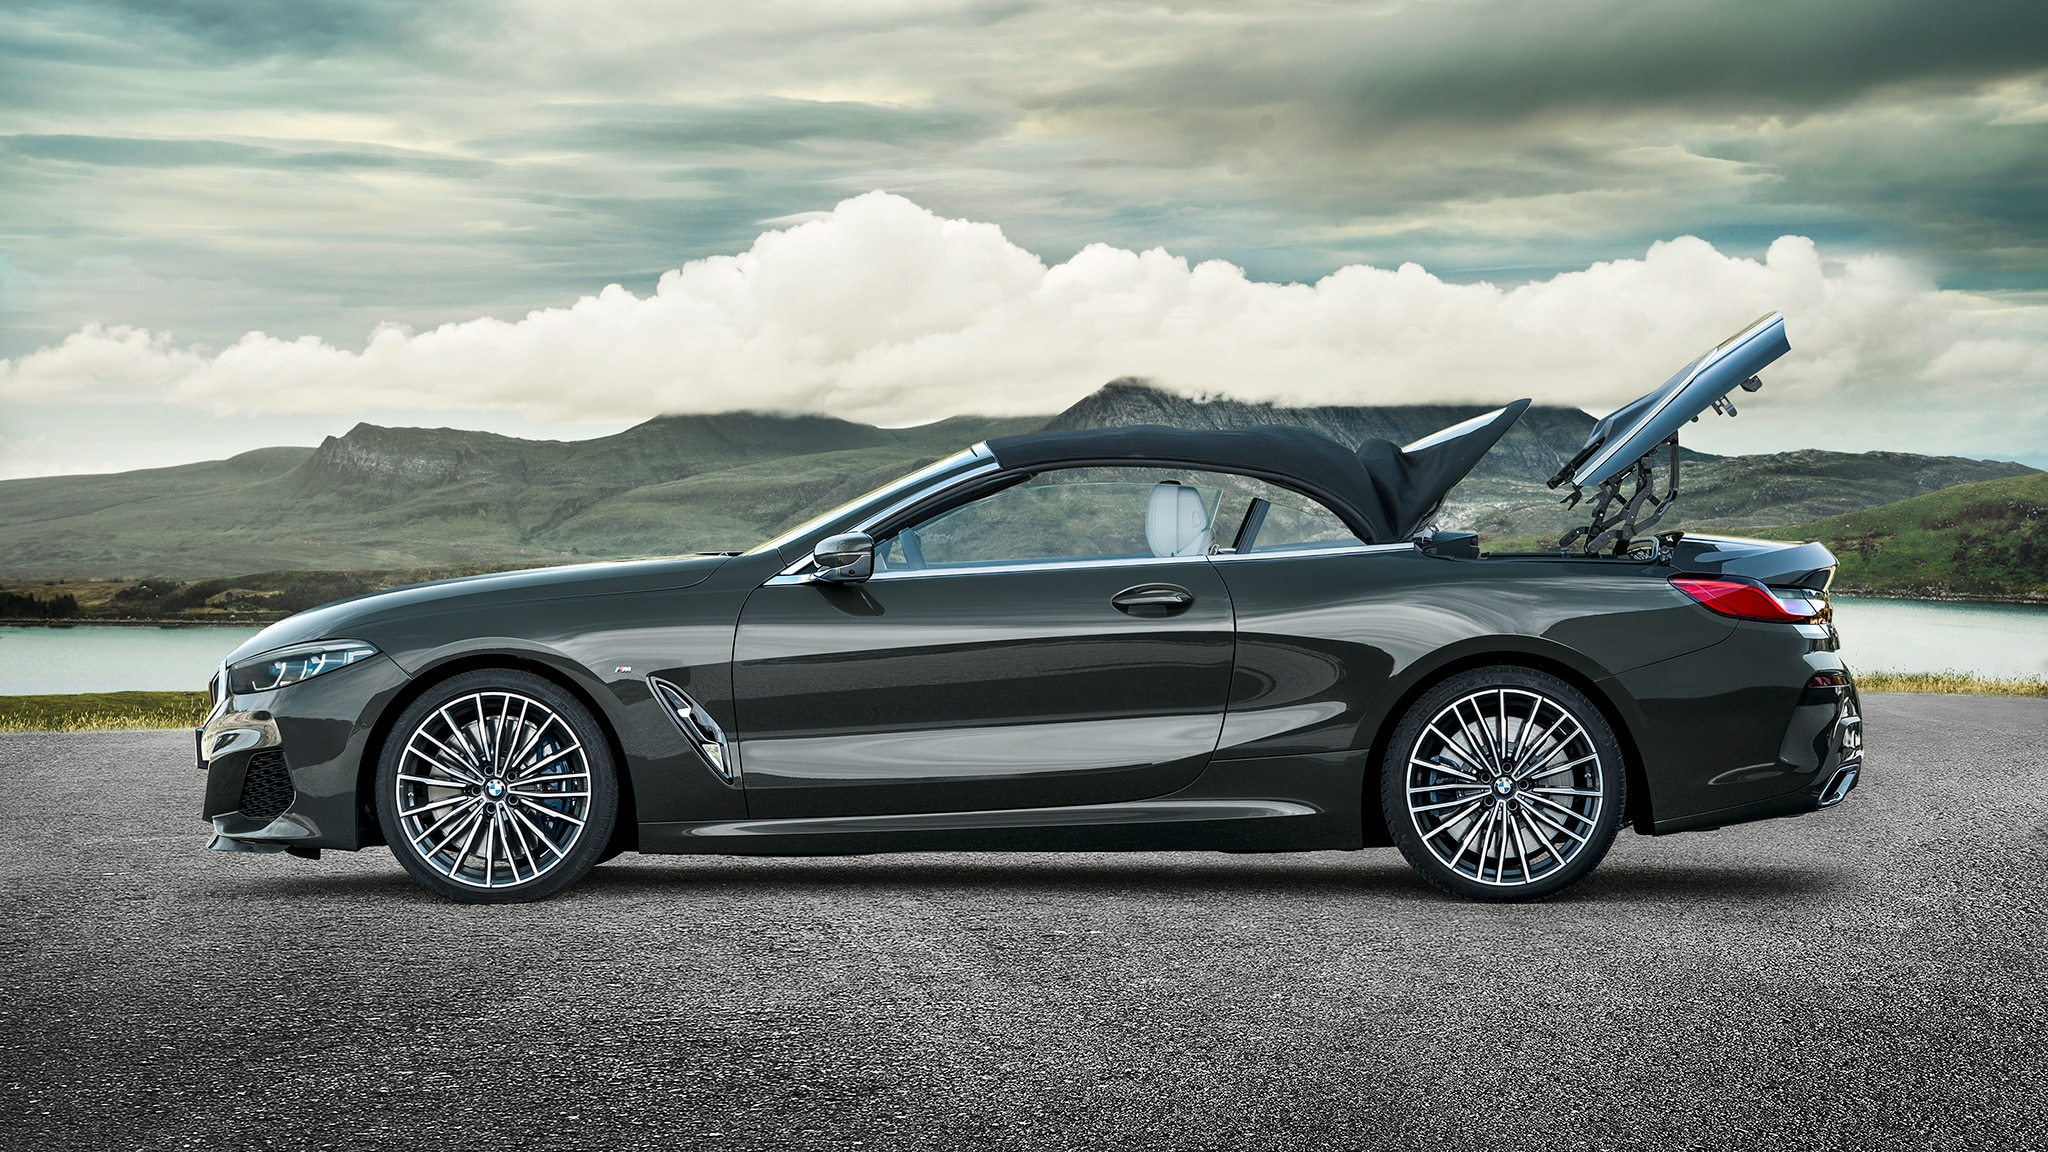 2019 BMW M850i Convertible Top Going Down 2